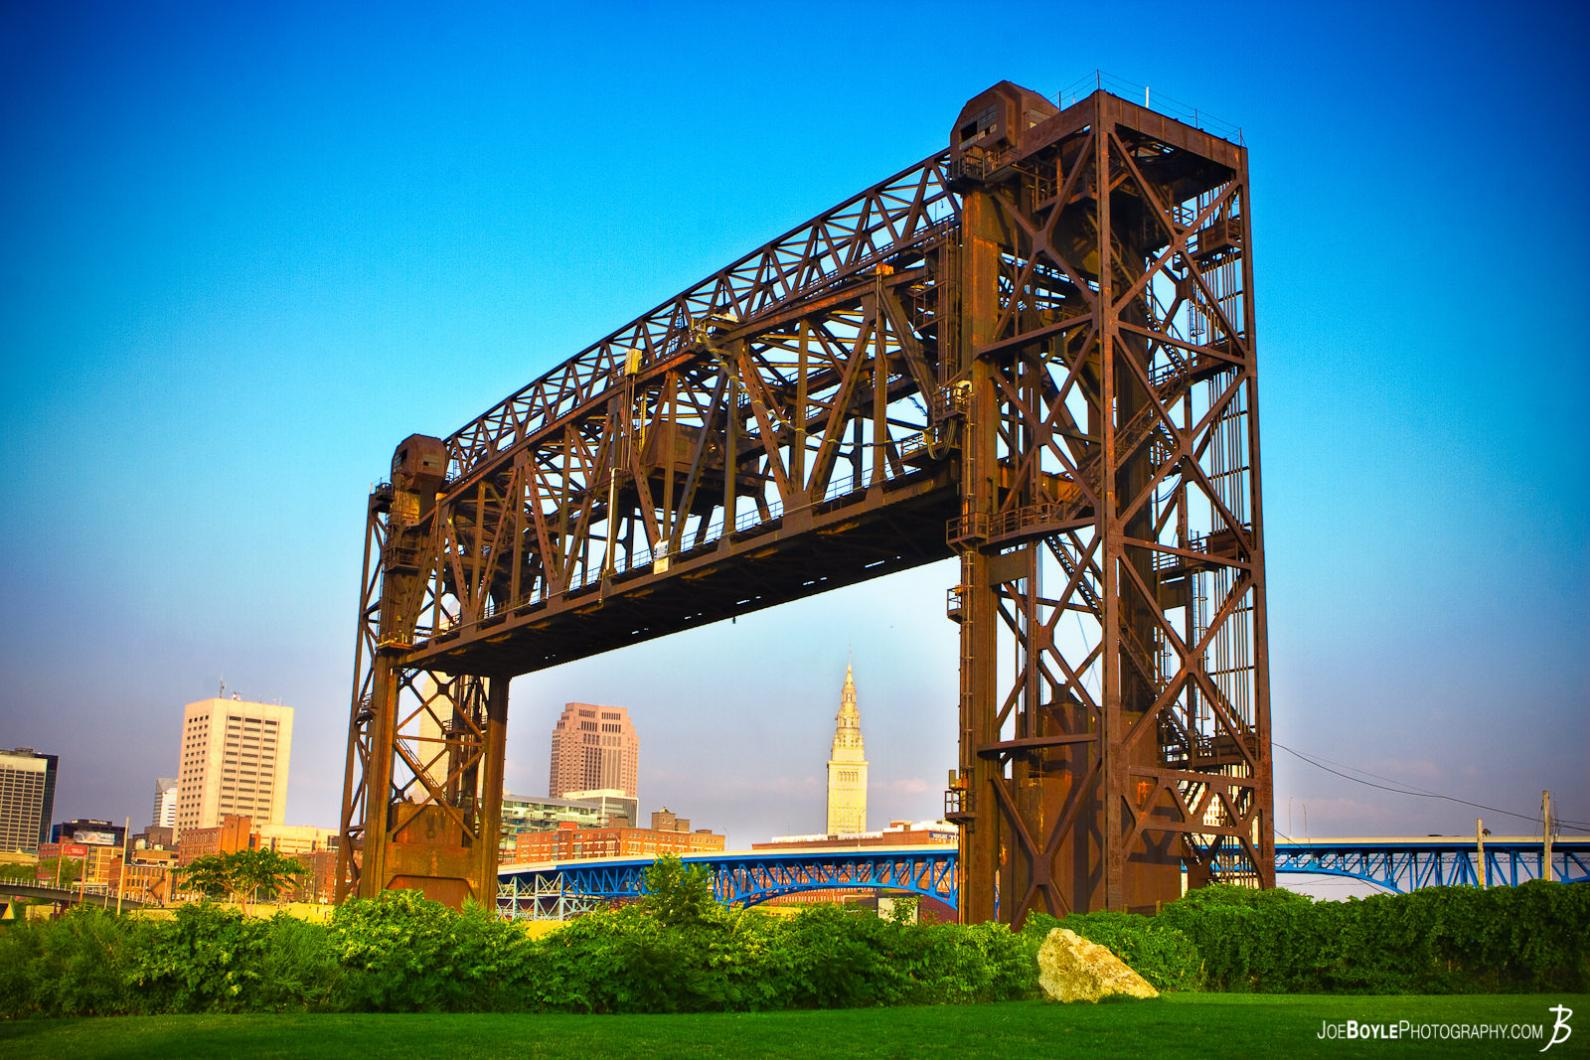 terminal-tower-train-bridge-landscape